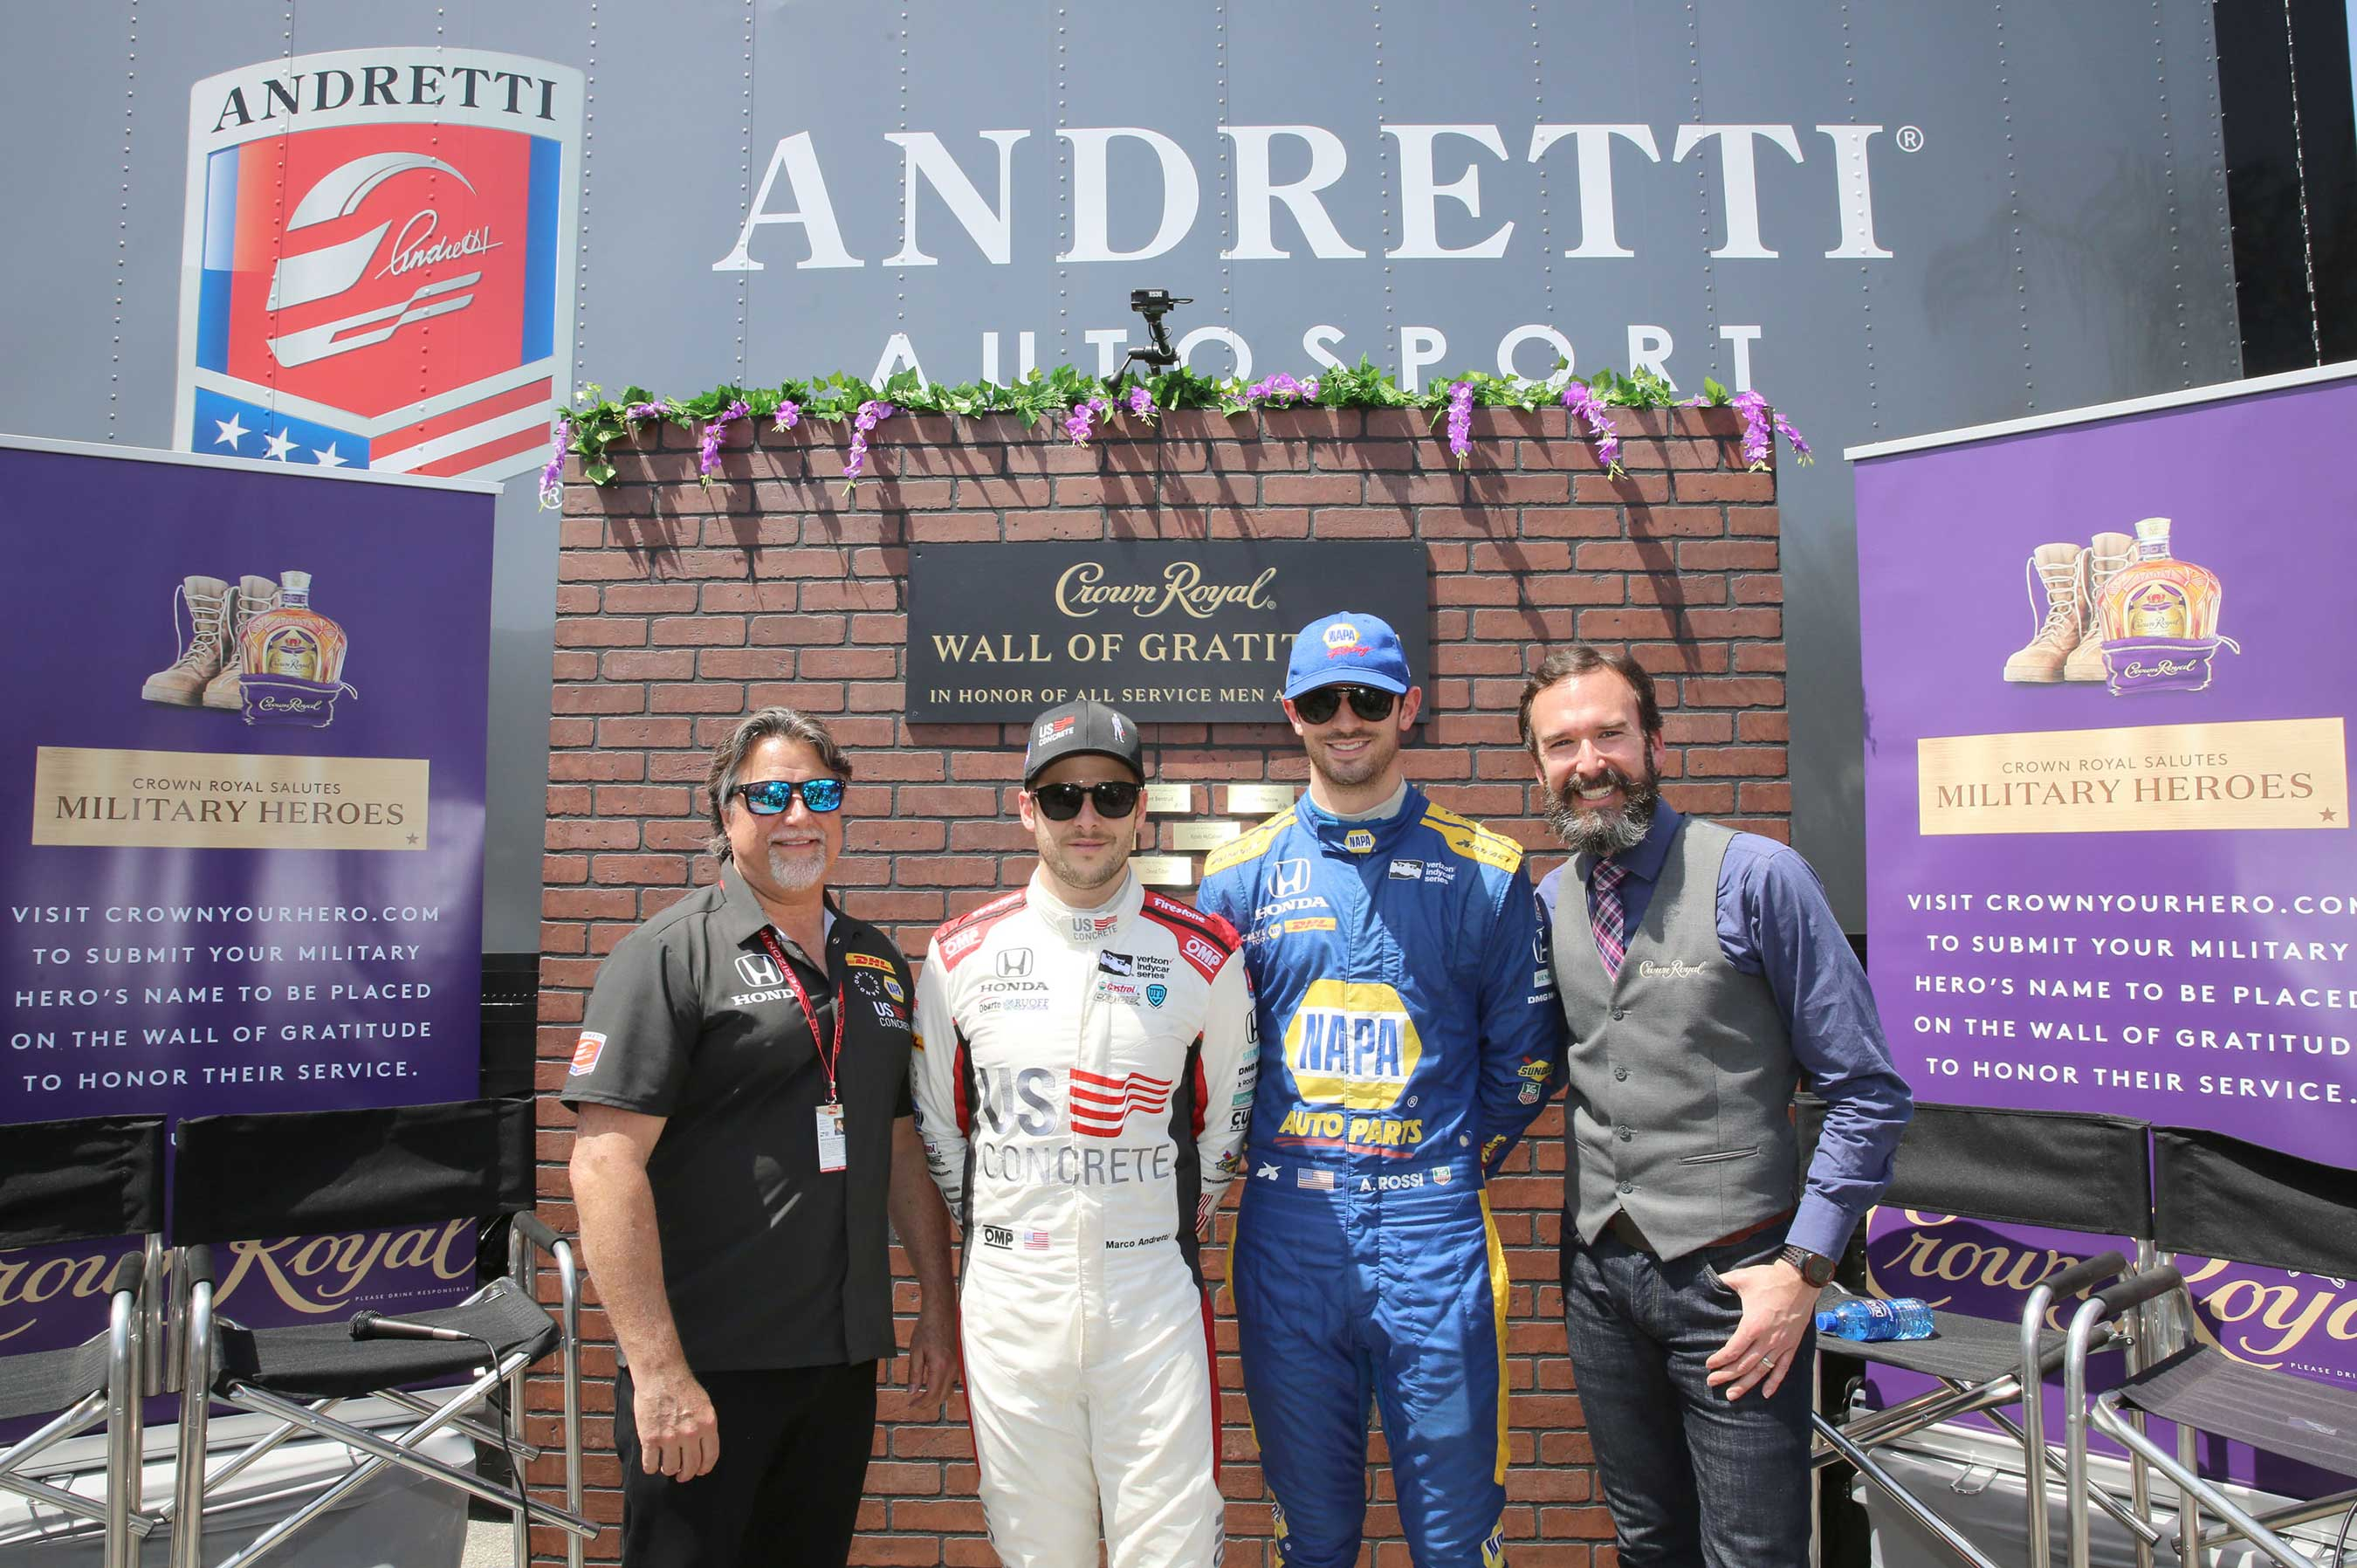 (L-R) Andretti Autosport CEO and Chairman Michael Andretti, Verizon IndyCar Series driver Marco Andretti, Verizon IndyCar Series driver Alexander Rossi, and Crown Royal Director of Whisky Engagement Stephen Wilson pictured during Crown Royal and Andretti Autosport team up to honor military heroes on April 13, 2018 in Long Beach, California. (Photo by Rachel Murray/Getty Images for Crown Royal)